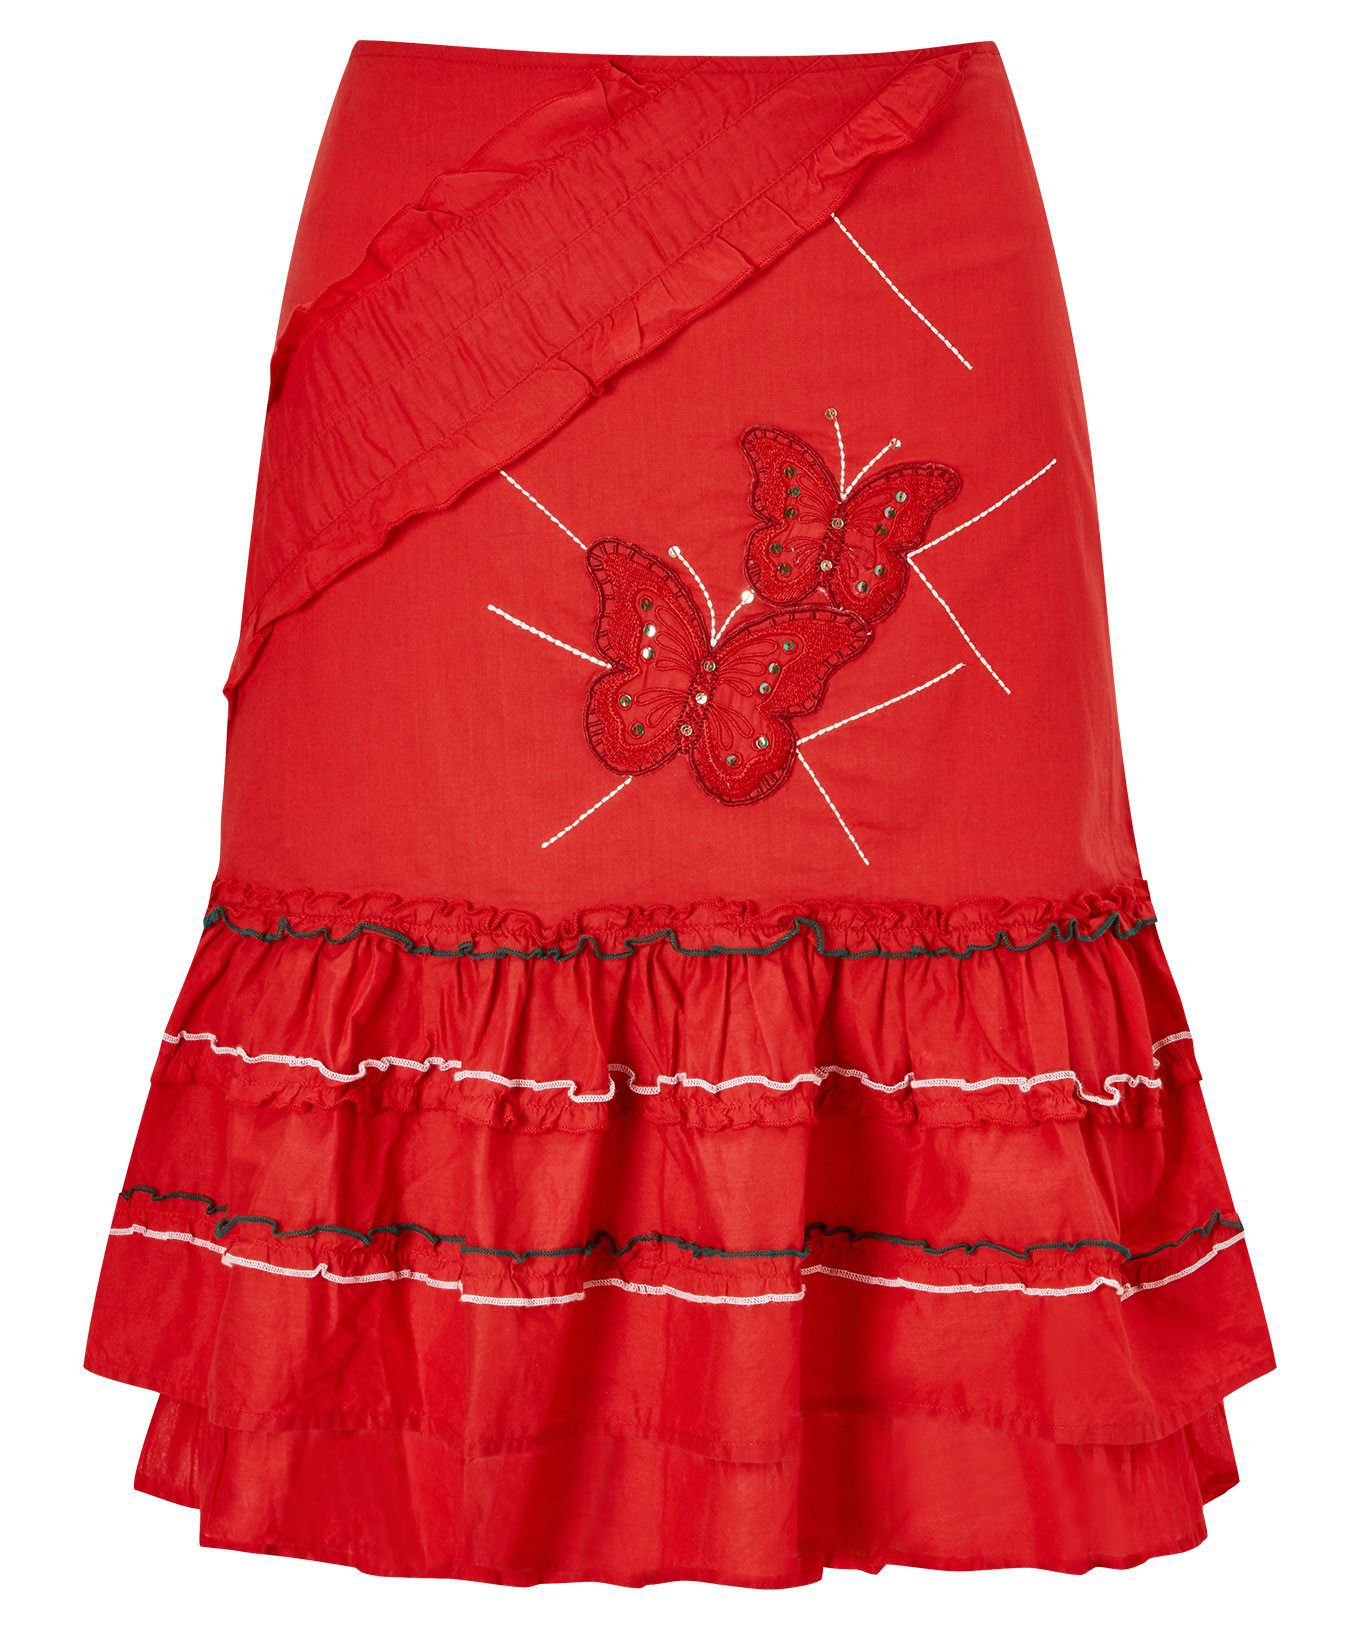 SL1452 Ex Chainstore Red Embroidered Salsa Skirt x12